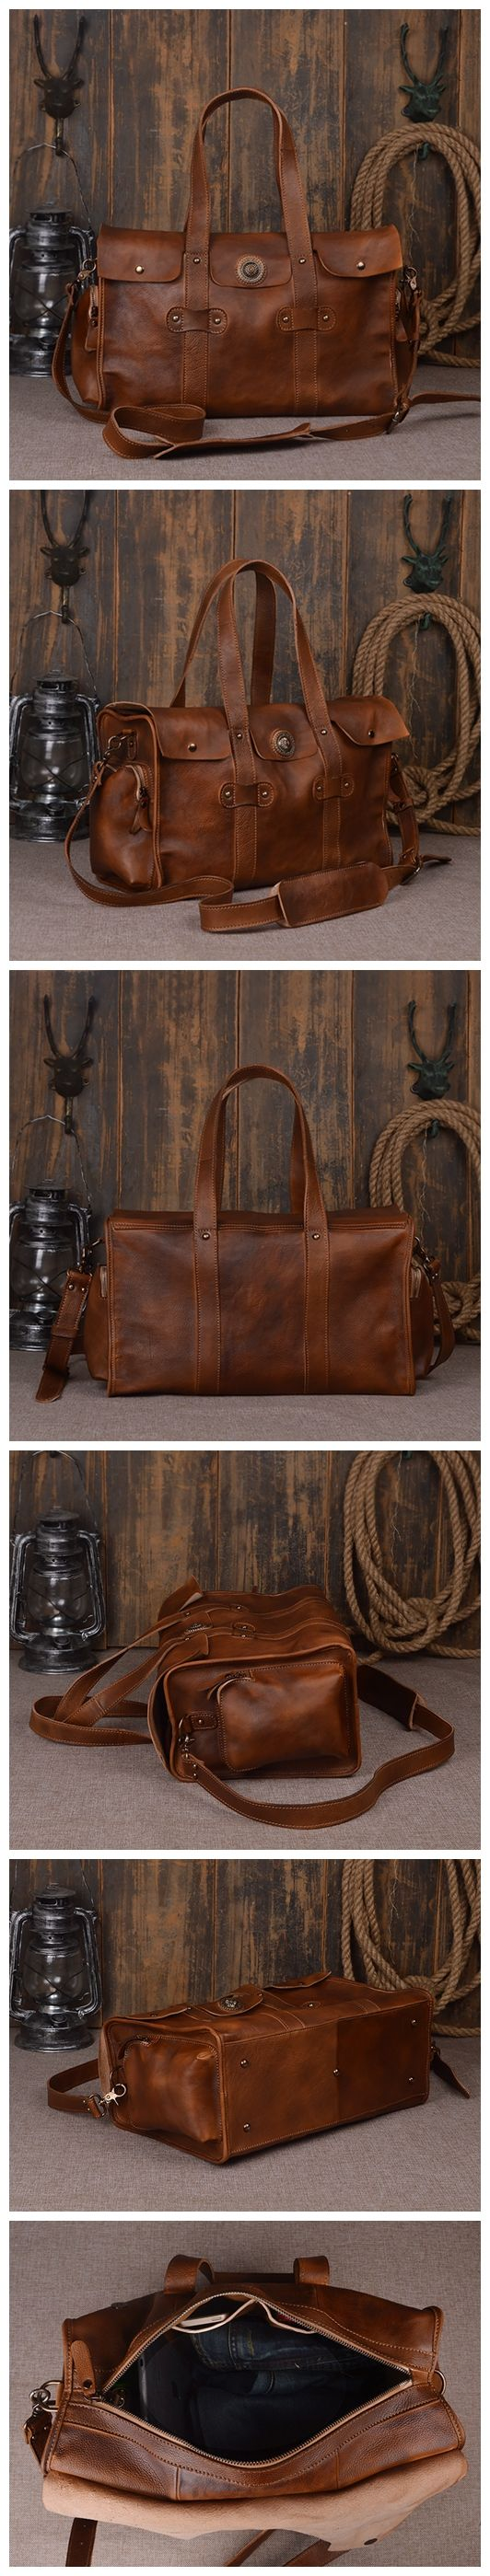 HANDMADE LARGE VINTAGE FULL GRAIN LEATHER TRAVEL BAG, DUFFLE BAG, HOLDALL LUGGAGE BAG, WEEKENDER BAG